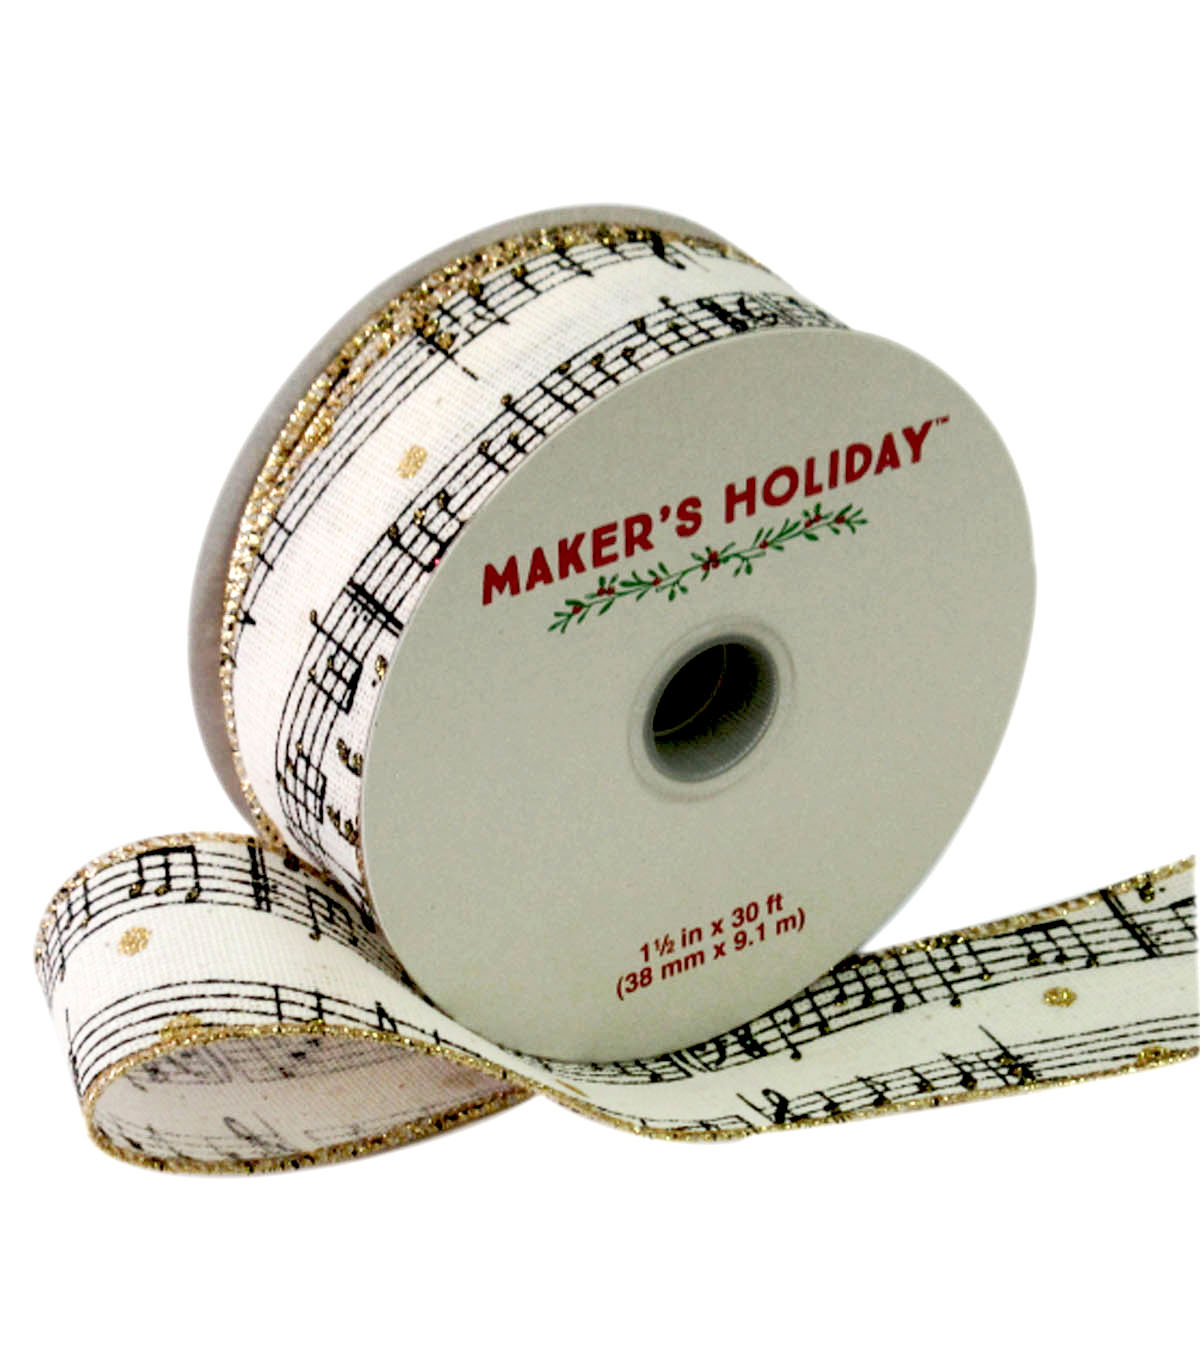 Maker's Holiday Ribbon 1.5''x30'-Black & Ivory Music Note